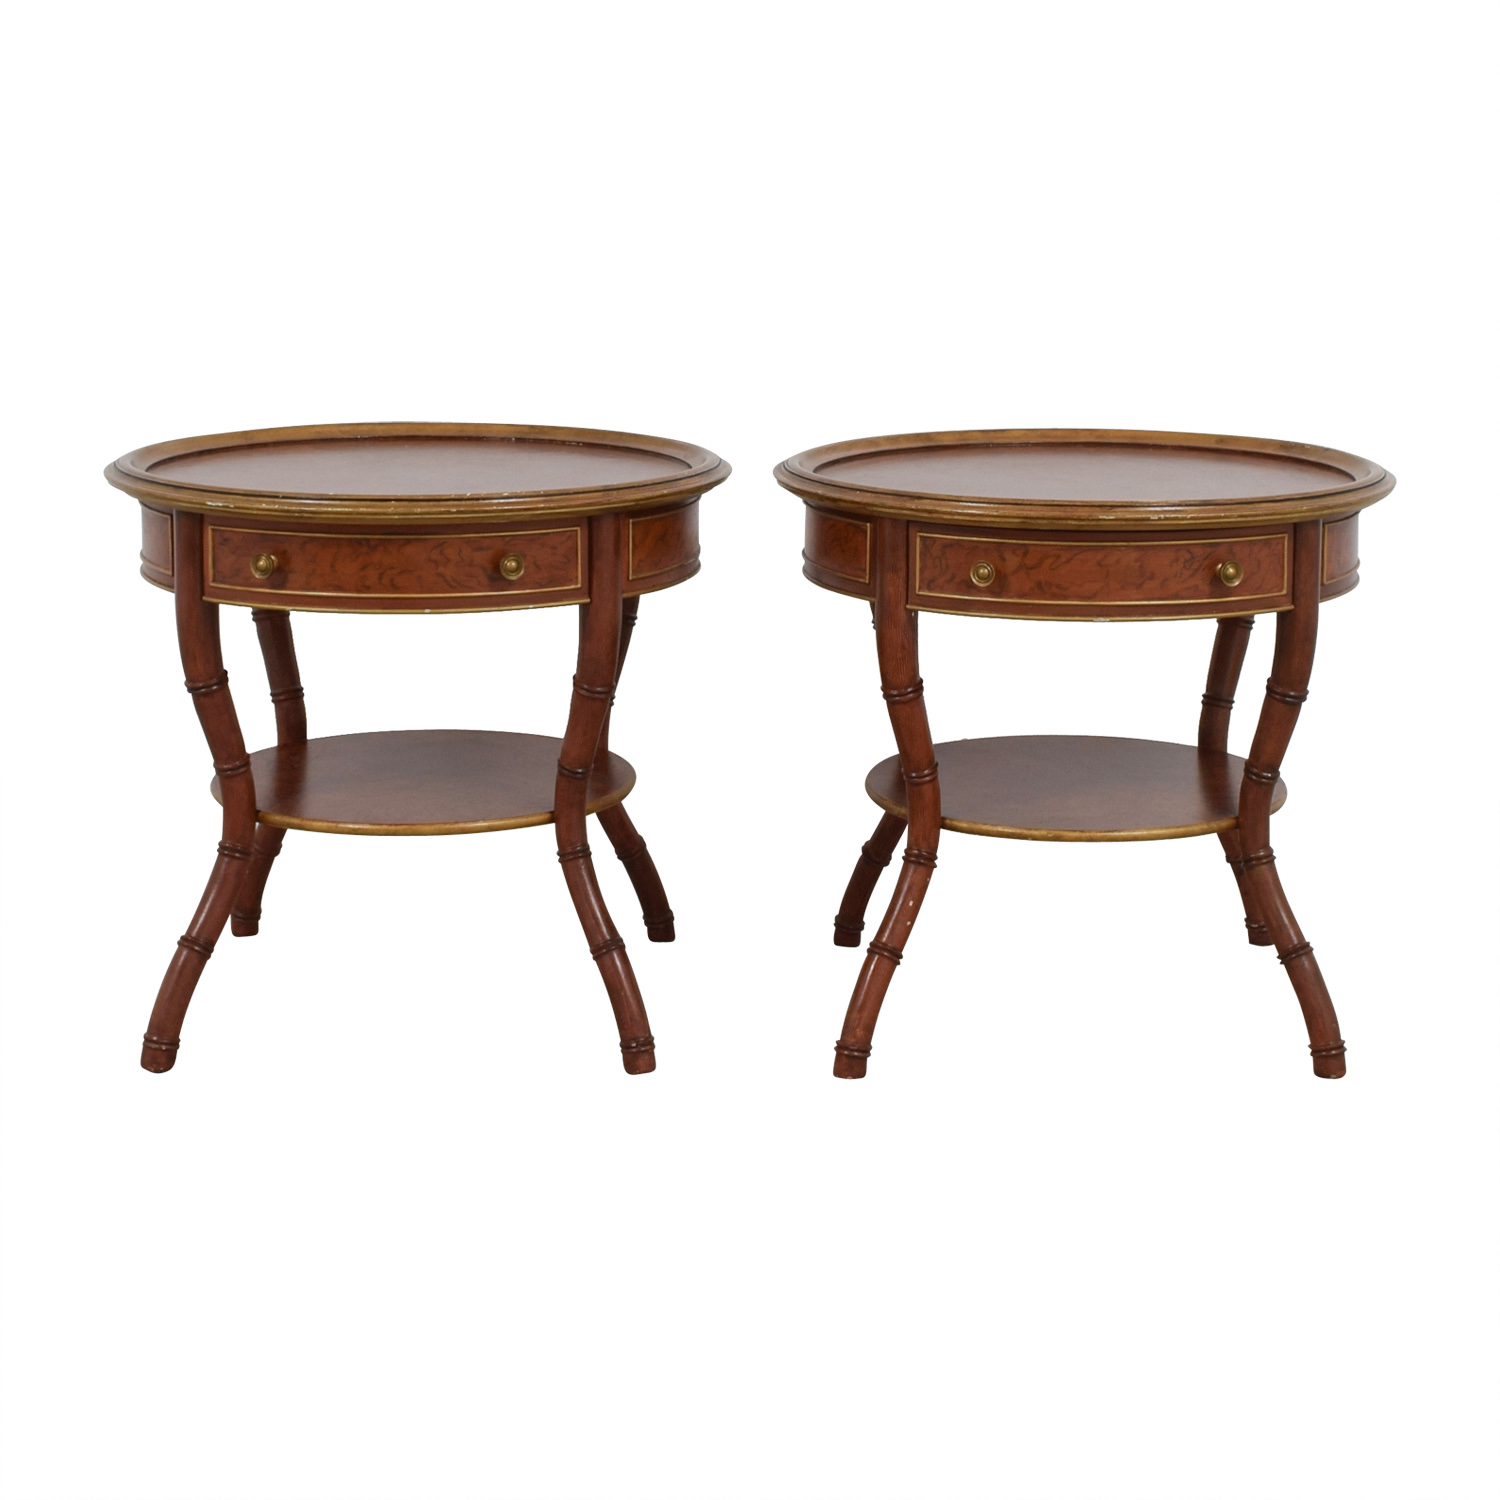 John Widdicomb John Widdicomb Mario Buatta Round Single Drawer Wood End Tables coupon